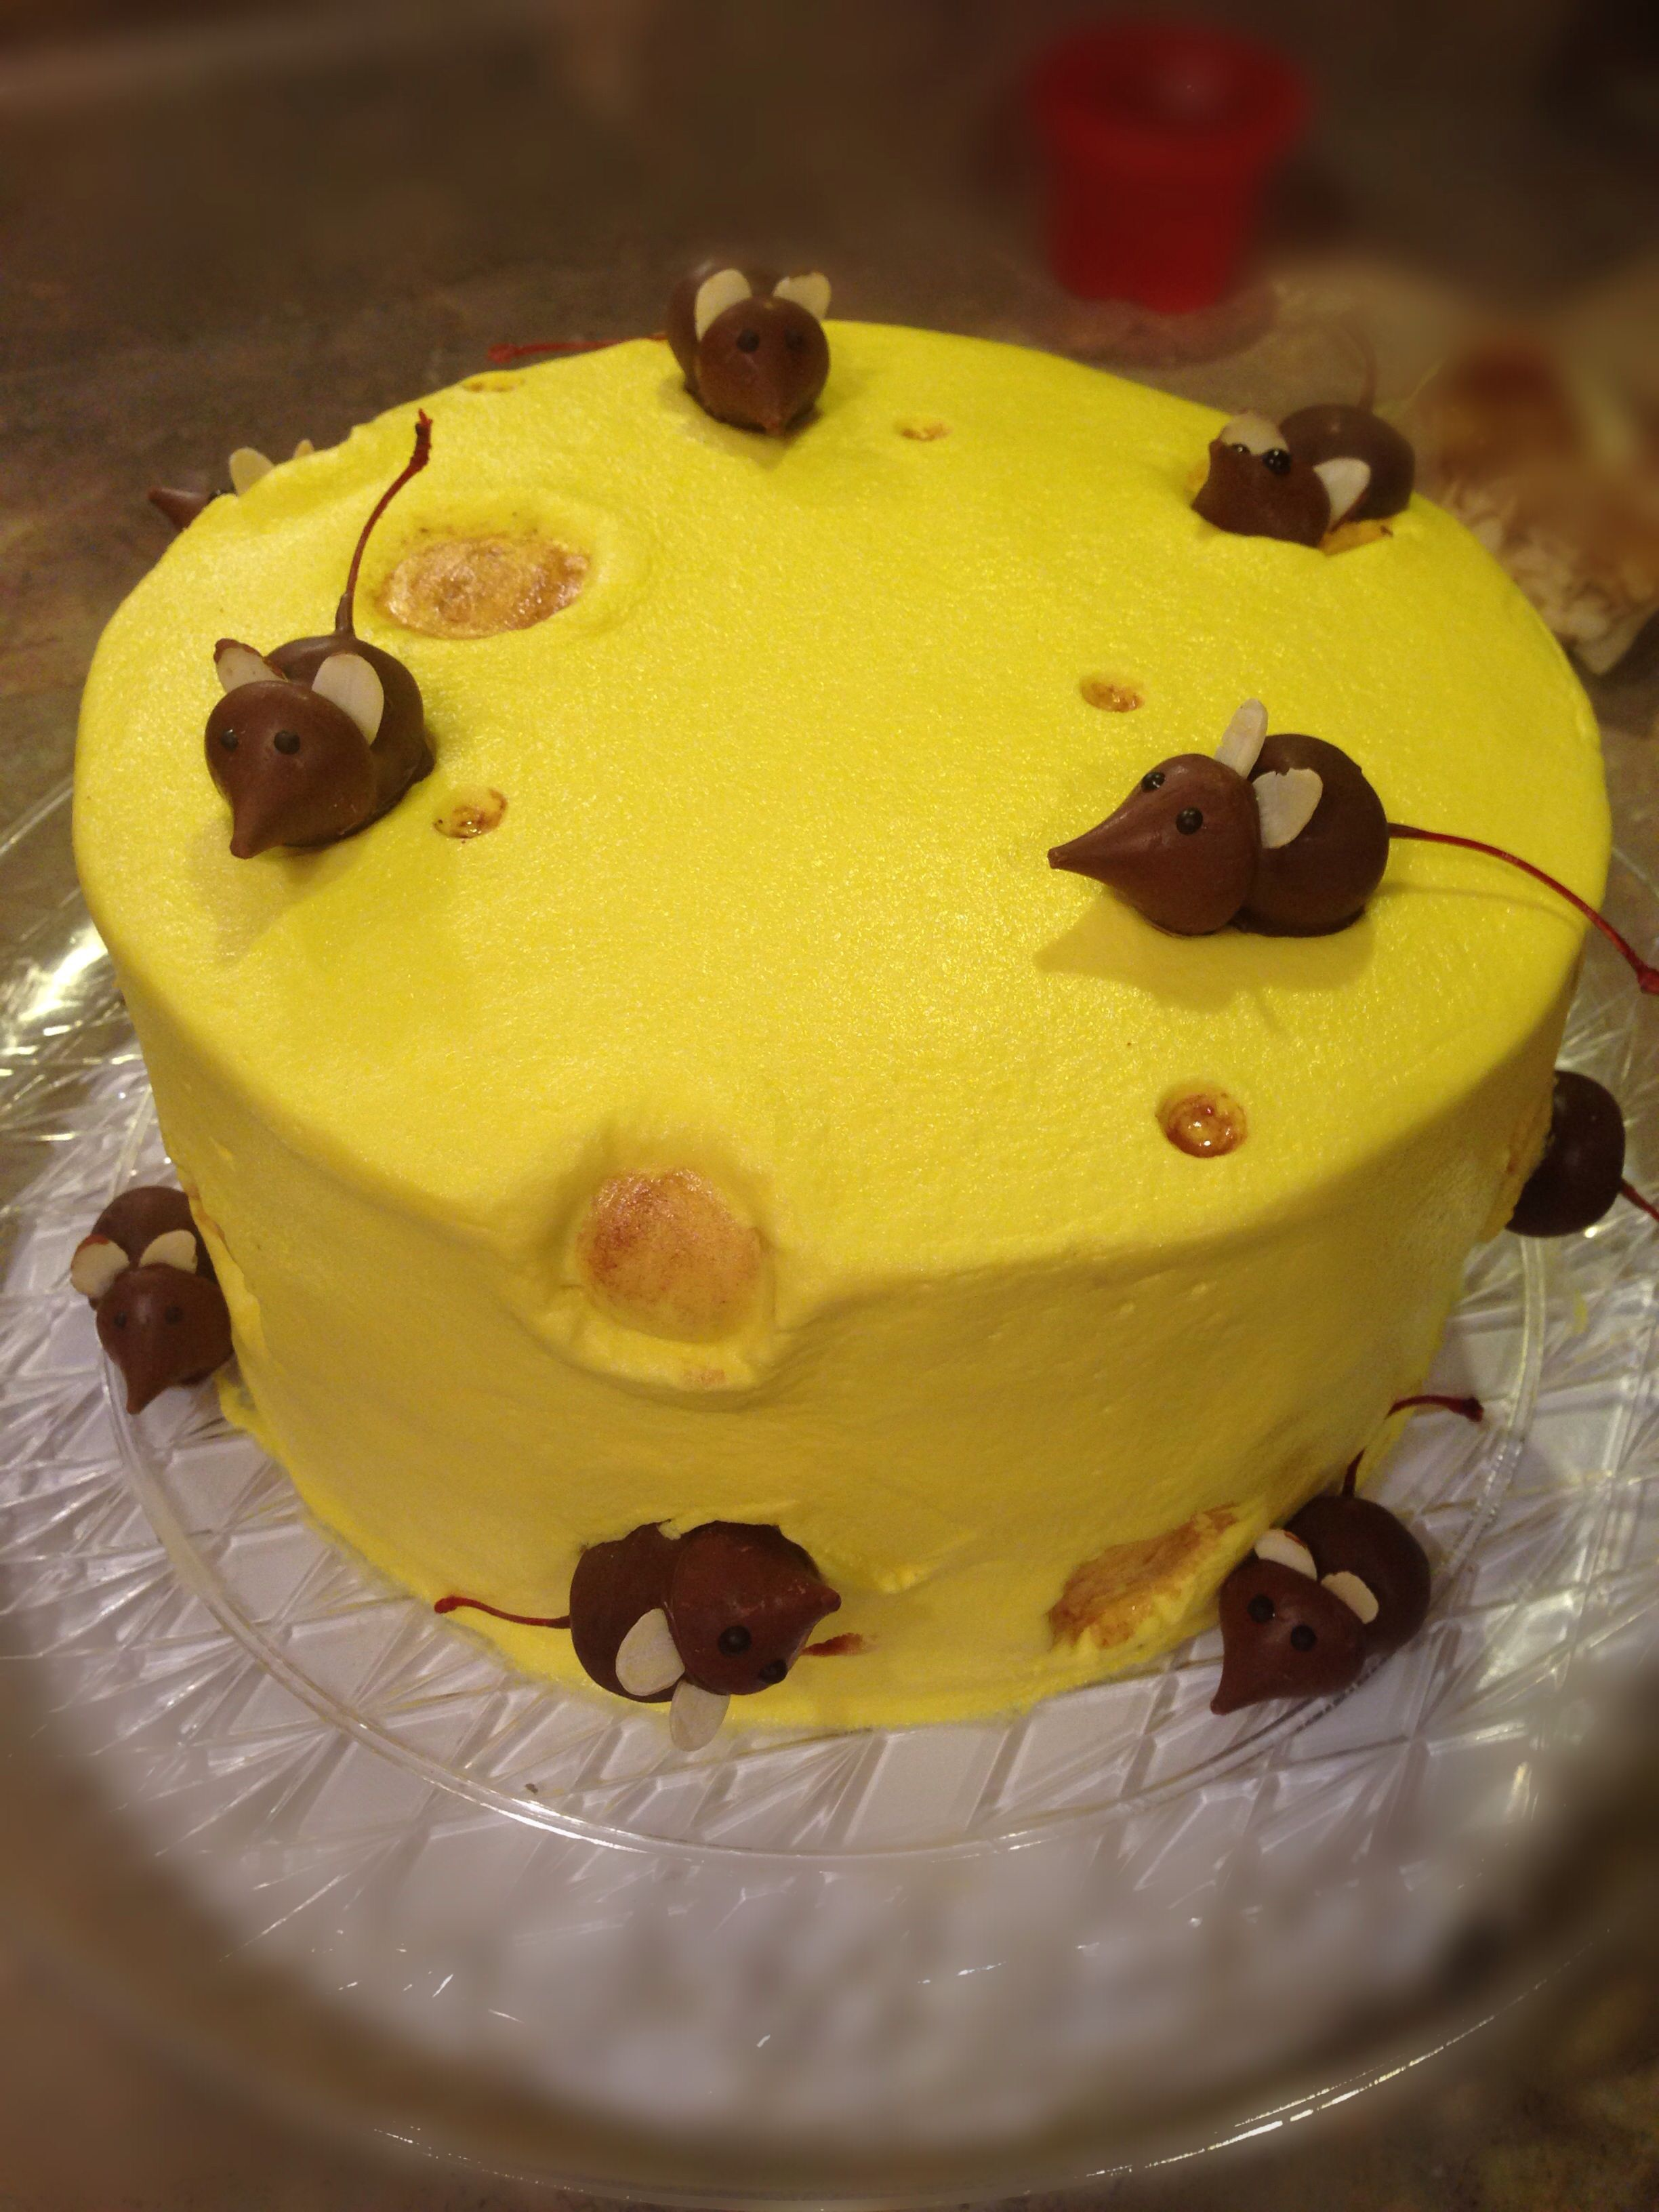 My Big Cheese Cake For Bosses Day With Cherry Hershey Kiss Mice